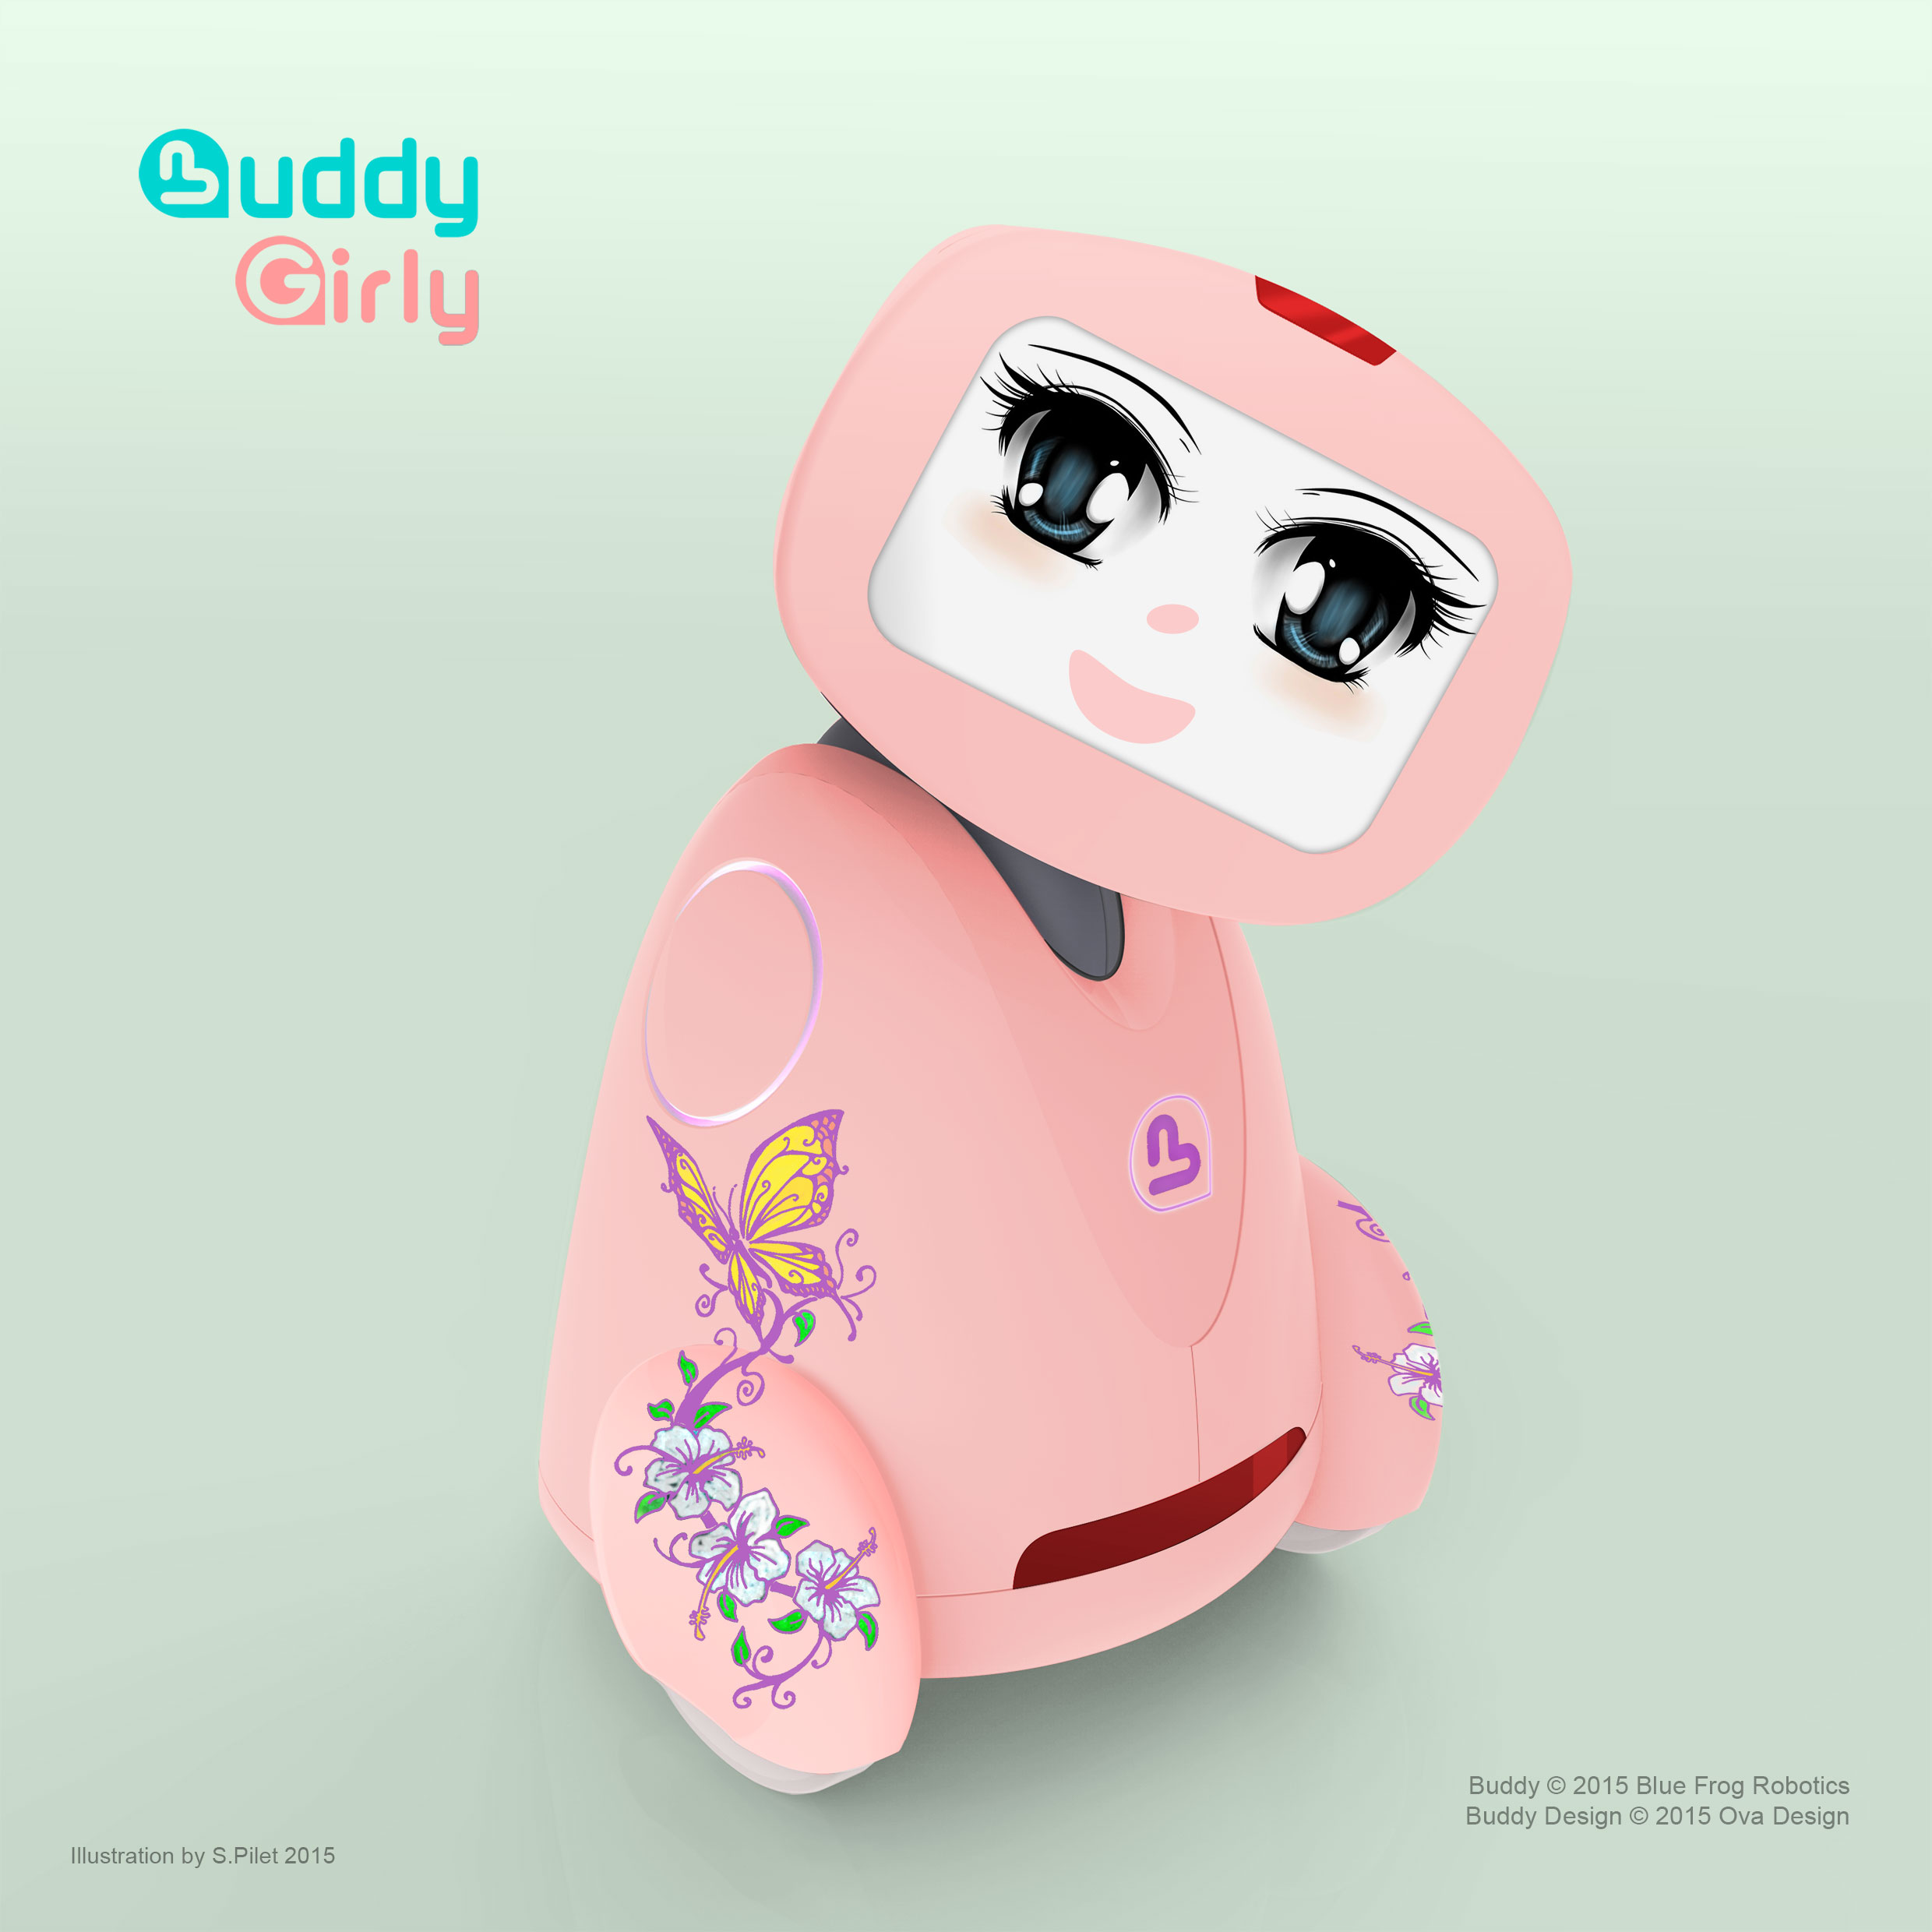 Buddy-Girly2